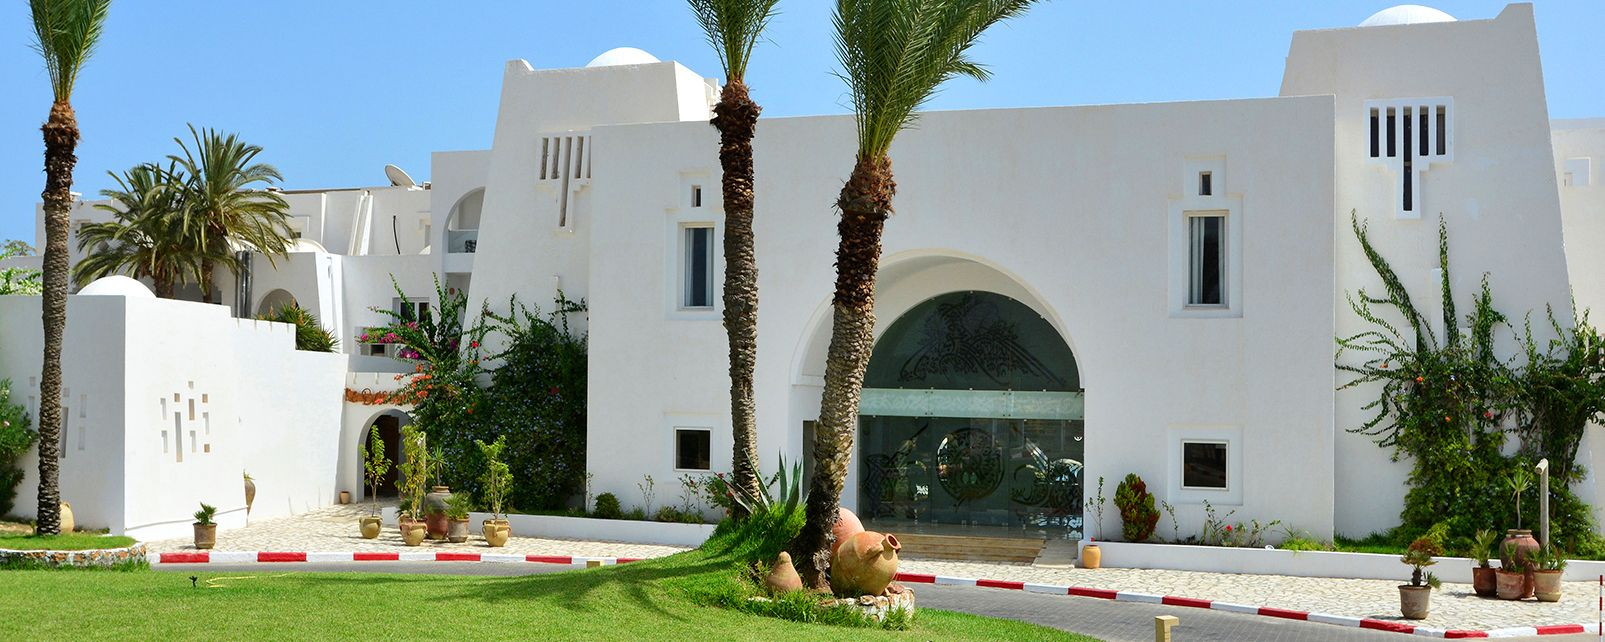 Hotel mondi club seabel aladin in djerba tunisia for Club vacances ardeche avec piscine